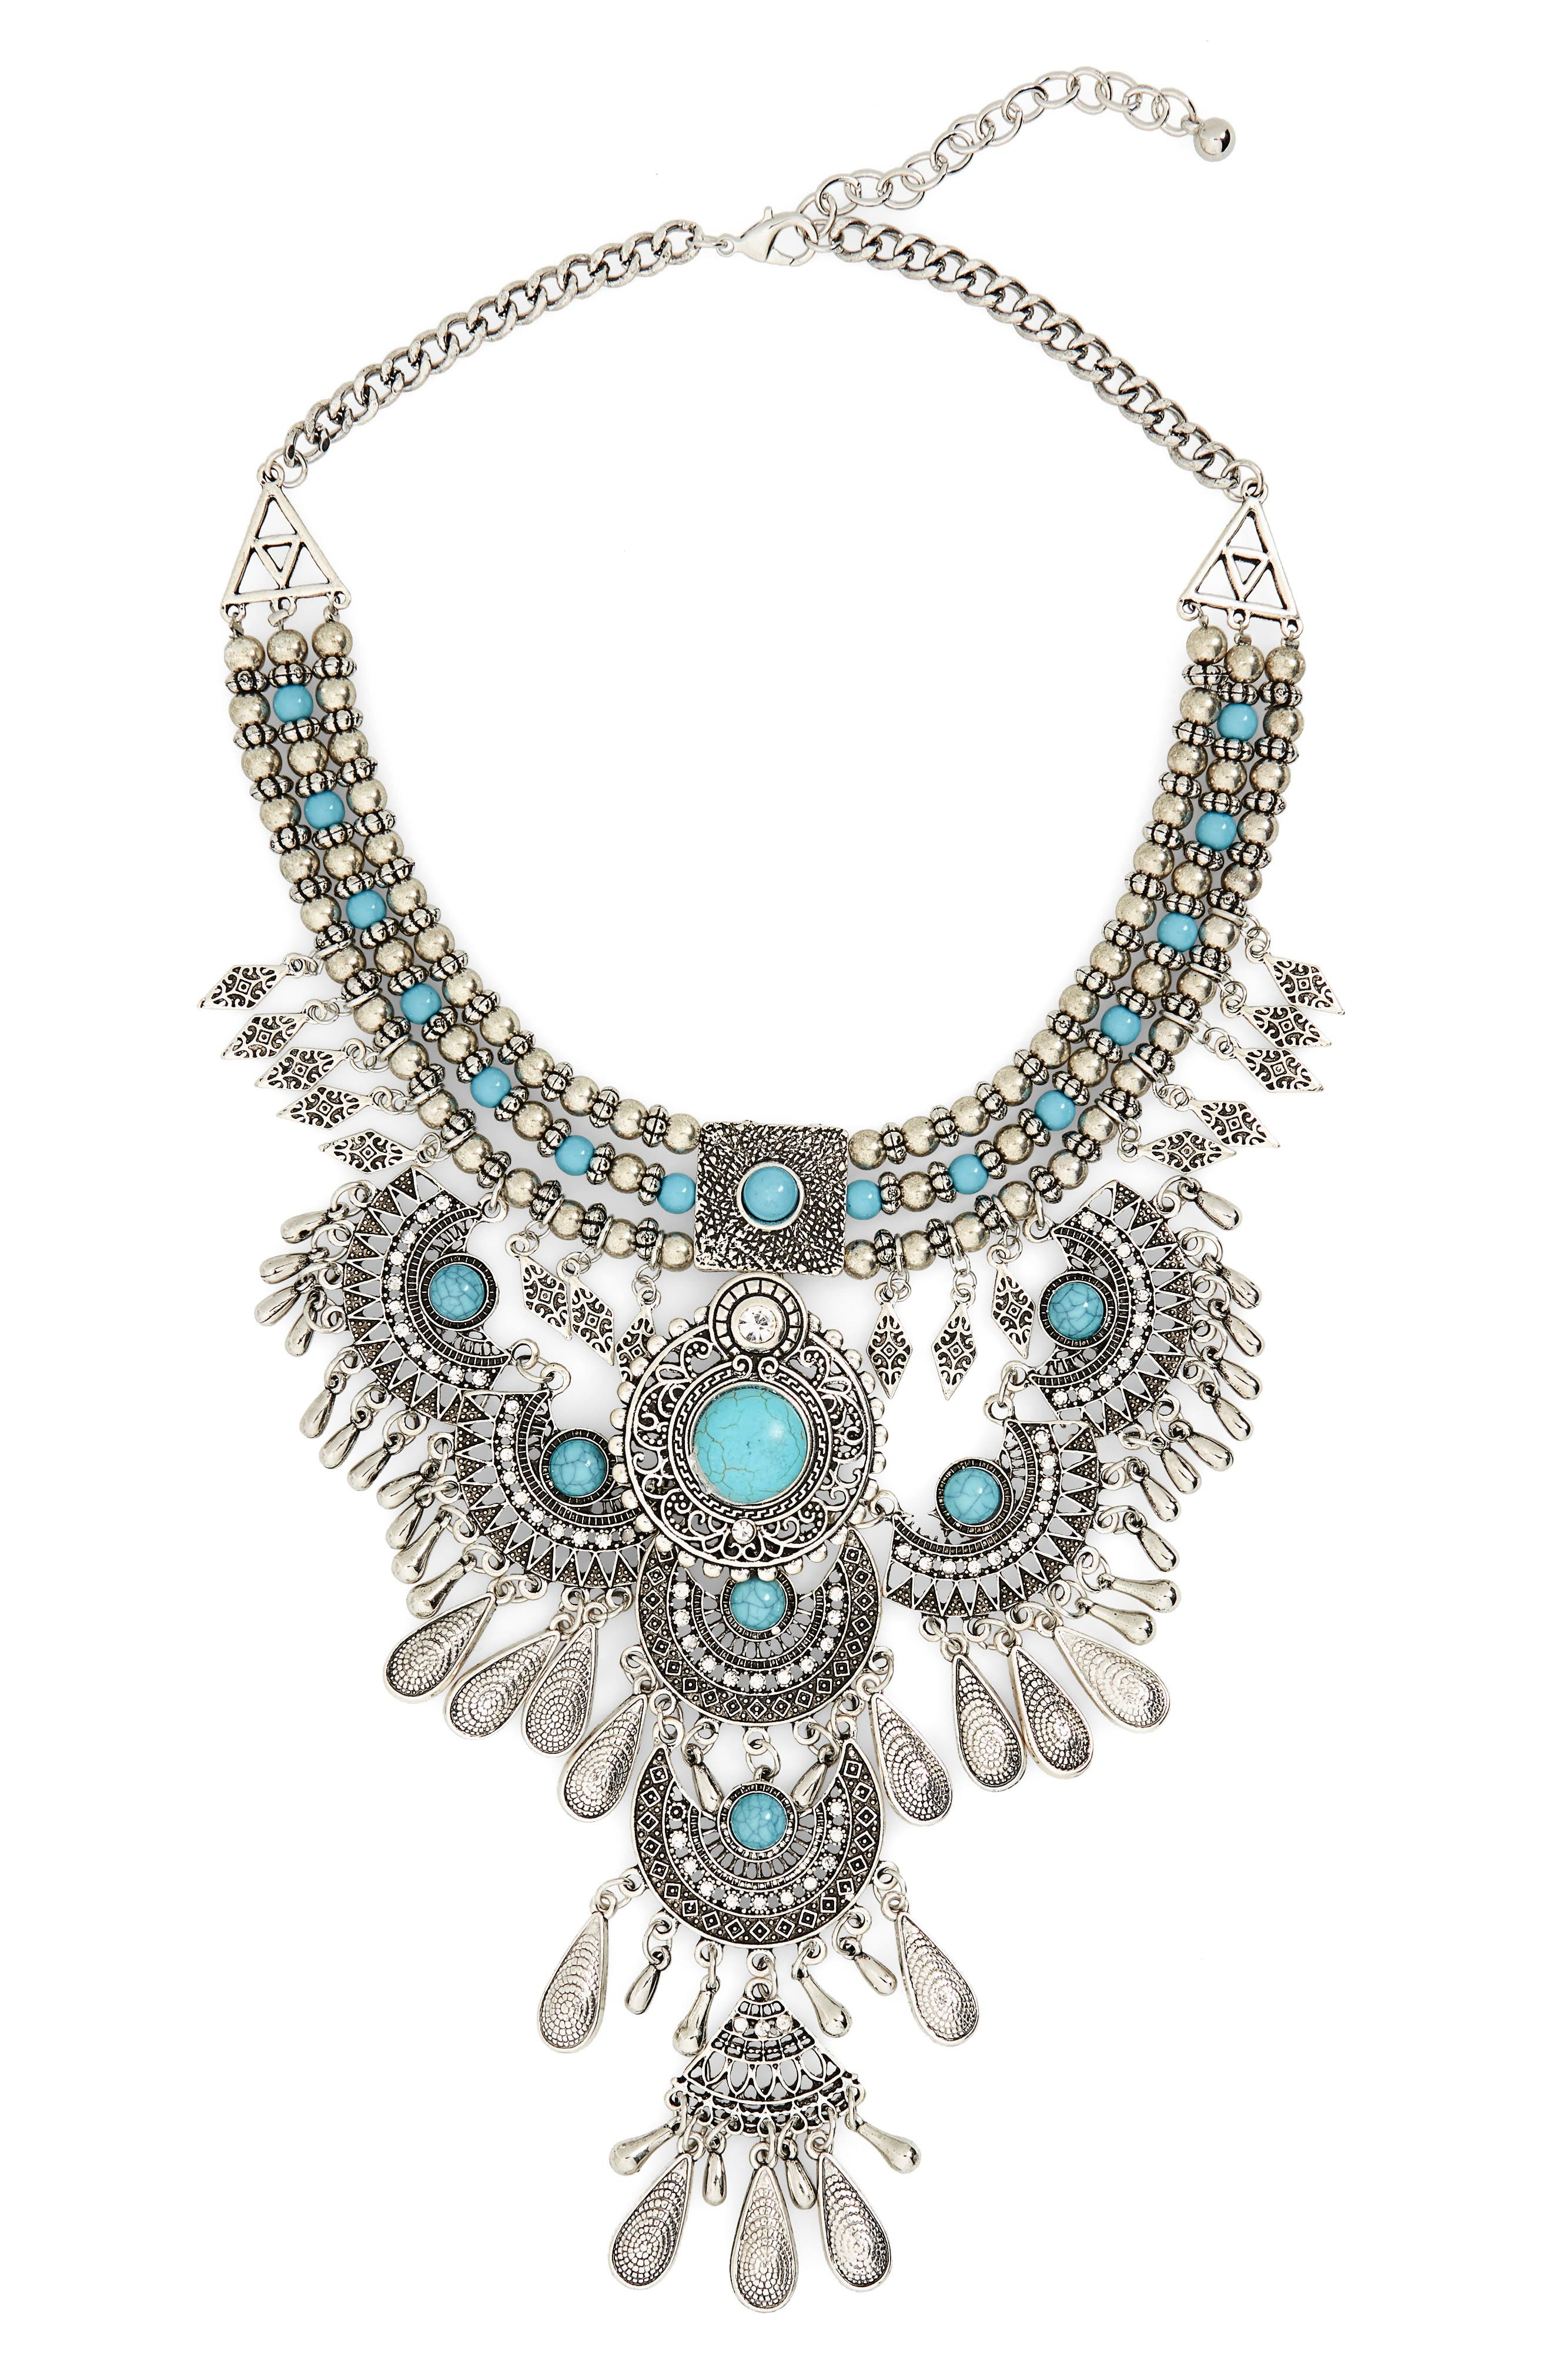 Western Bib Necklace,                             Main thumbnail 1, color,                             Silver/ Turquoise